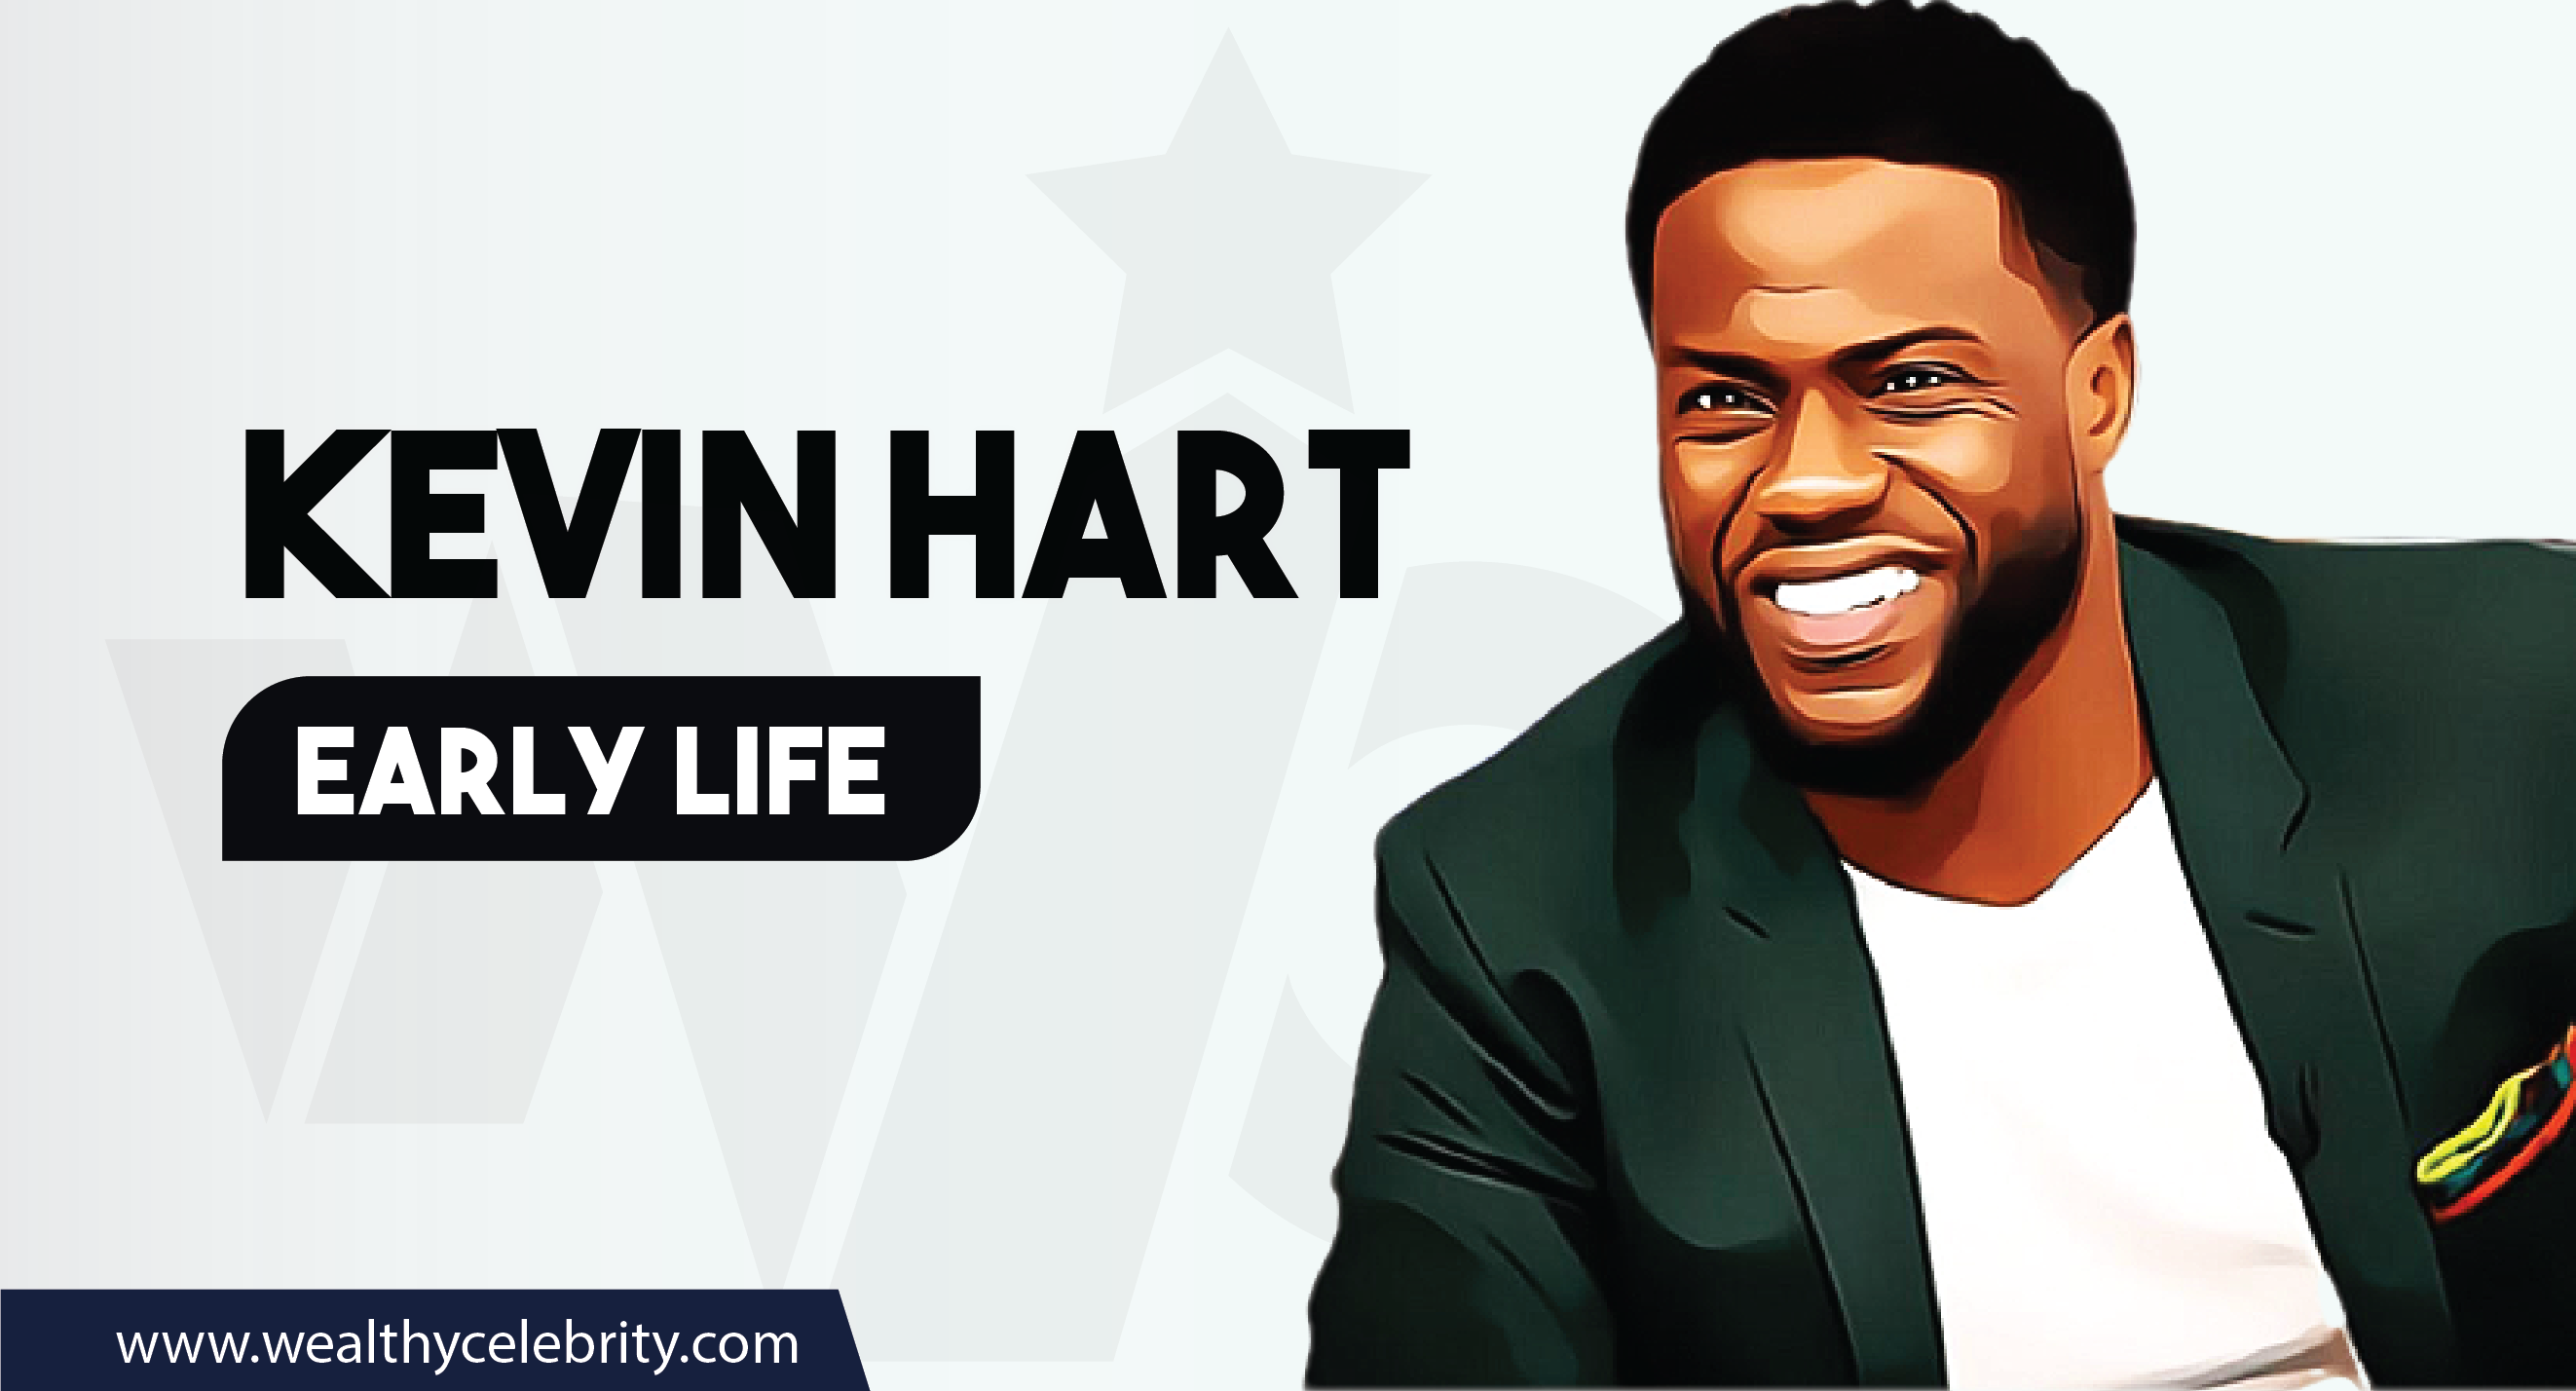 Kevin Hart - Early Life